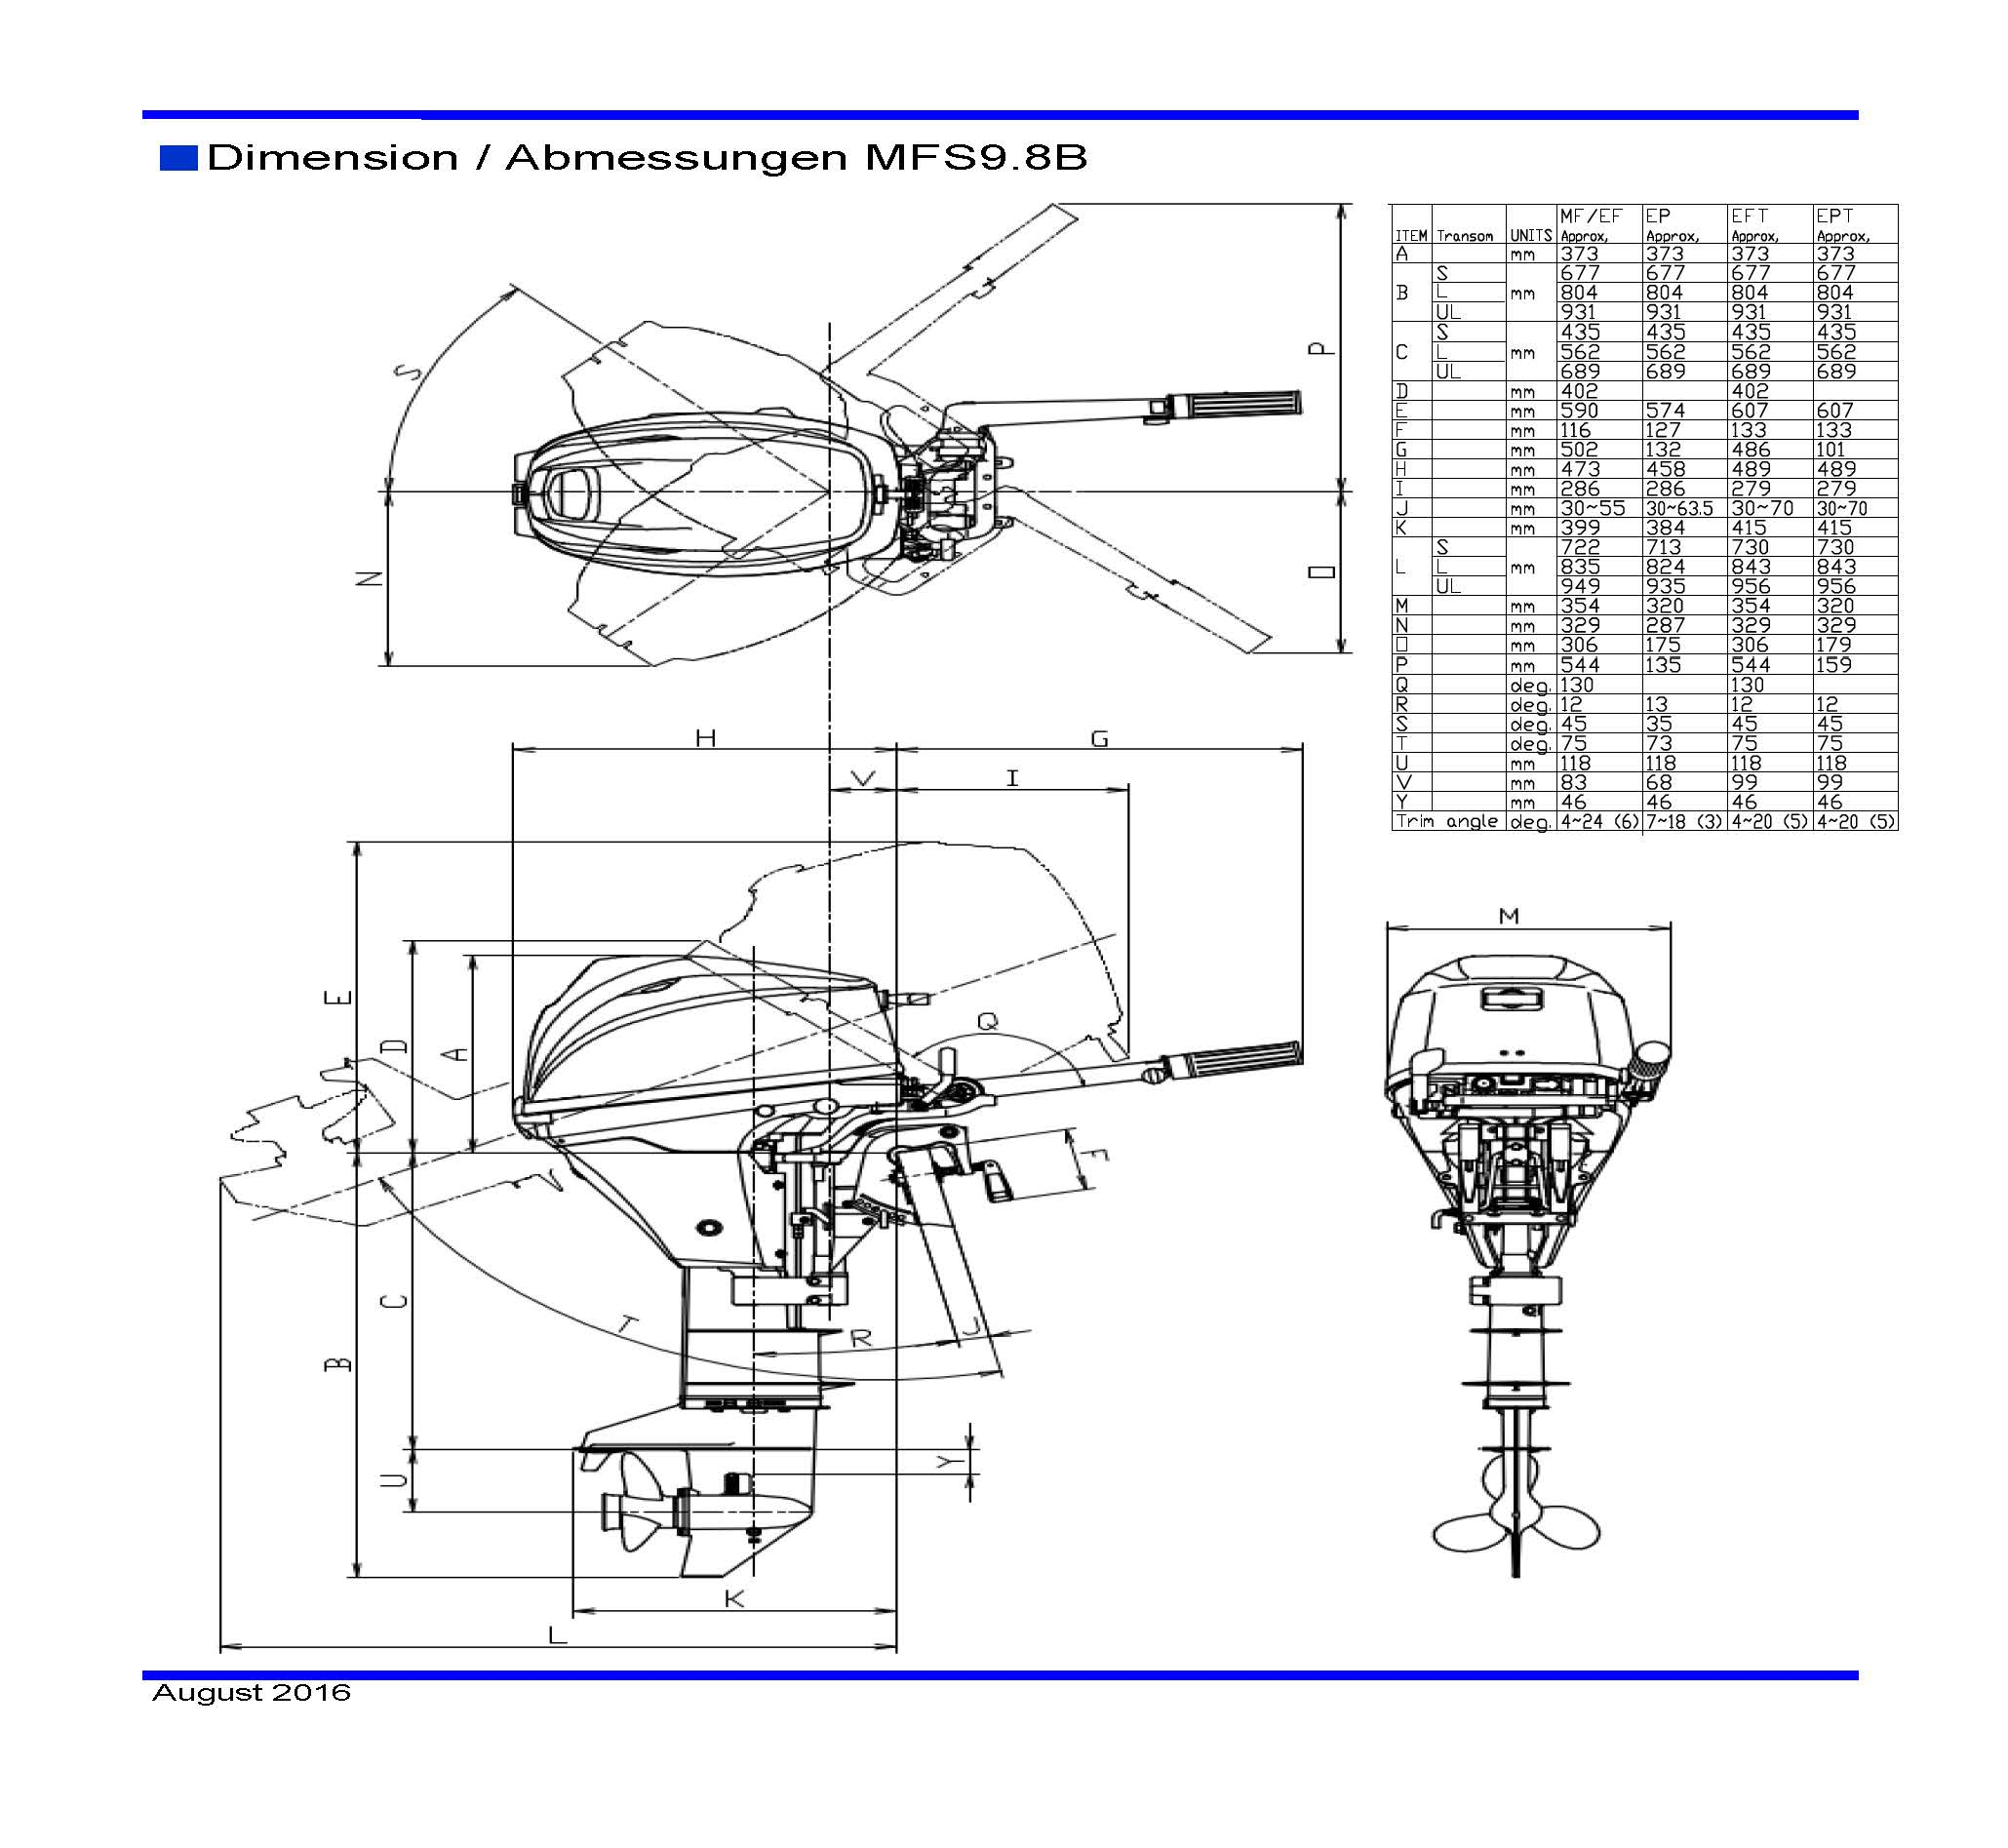 Stroke209cc Mercury Outboard 0r042475 Up Carburetor Diagram